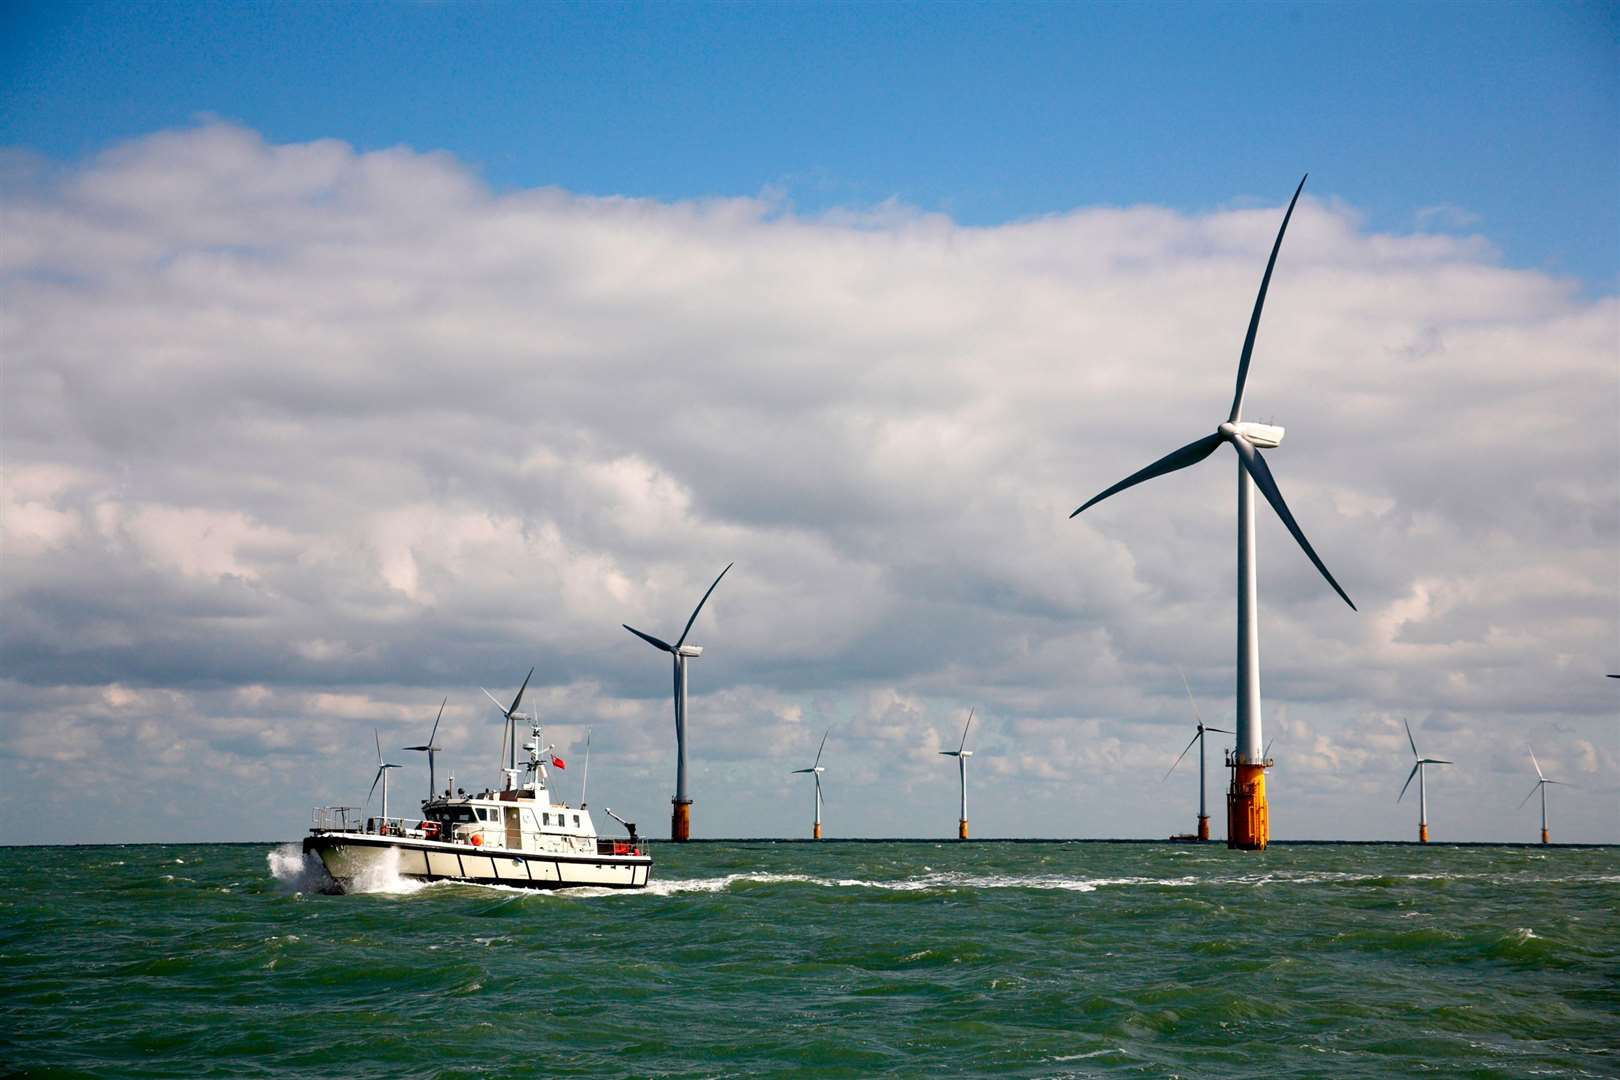 Thanet Offshore Wind Farm. Picture by Kenneth Fleming, Grayling PR.